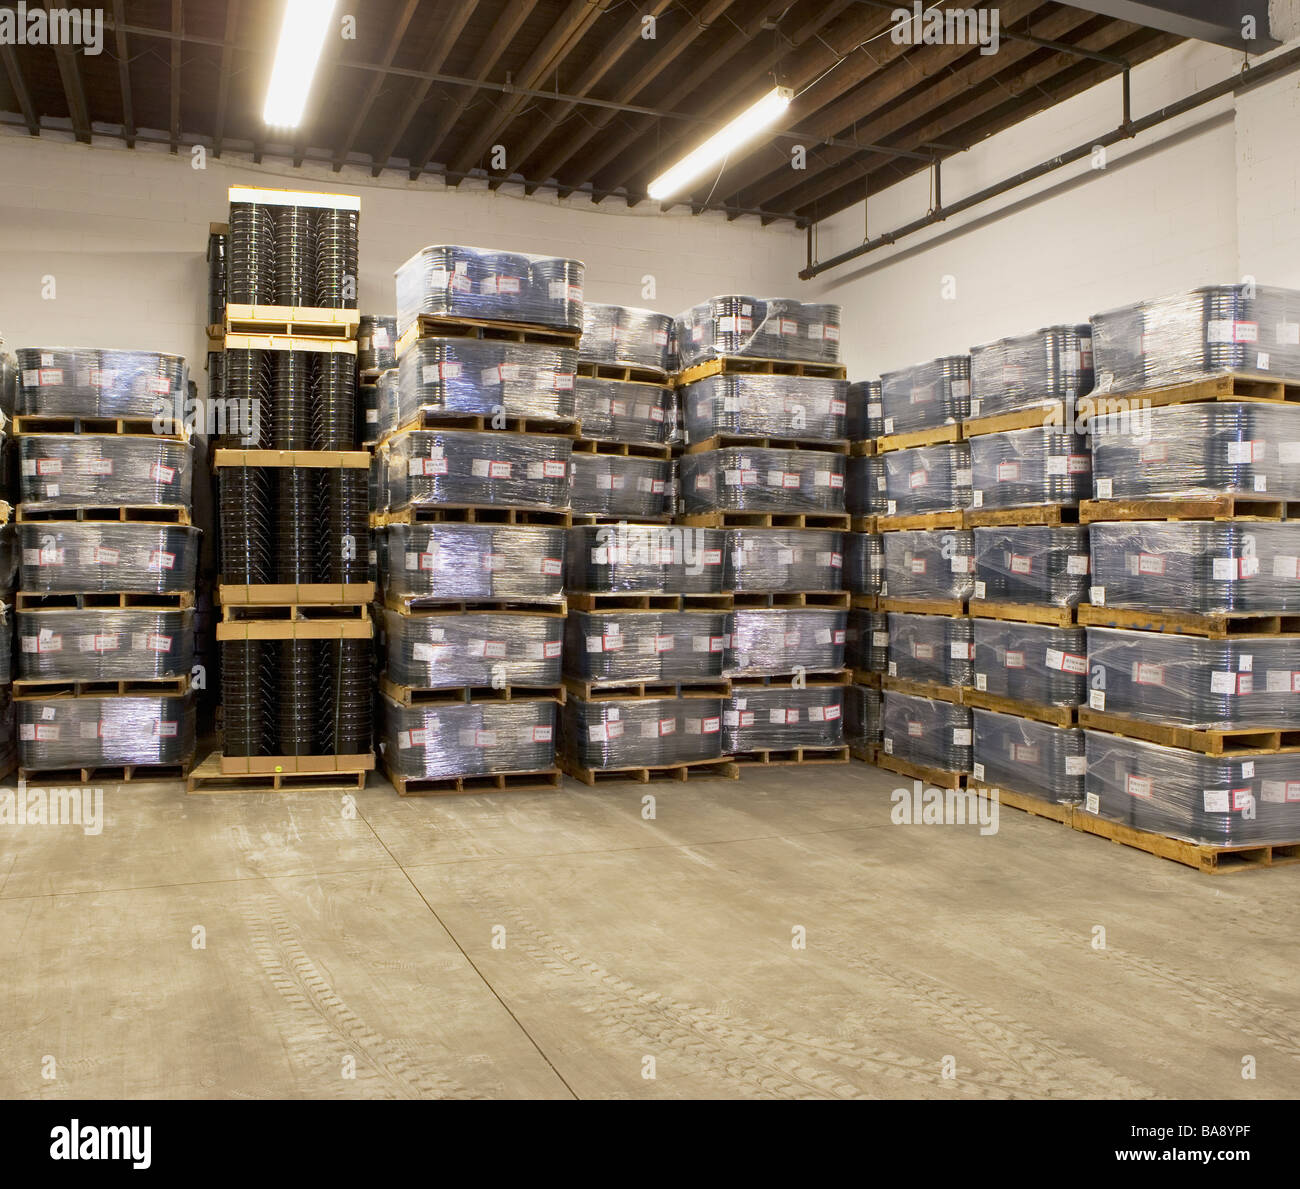 Pile Of Pallets Stock Photos & Pile Of Pallets Stock